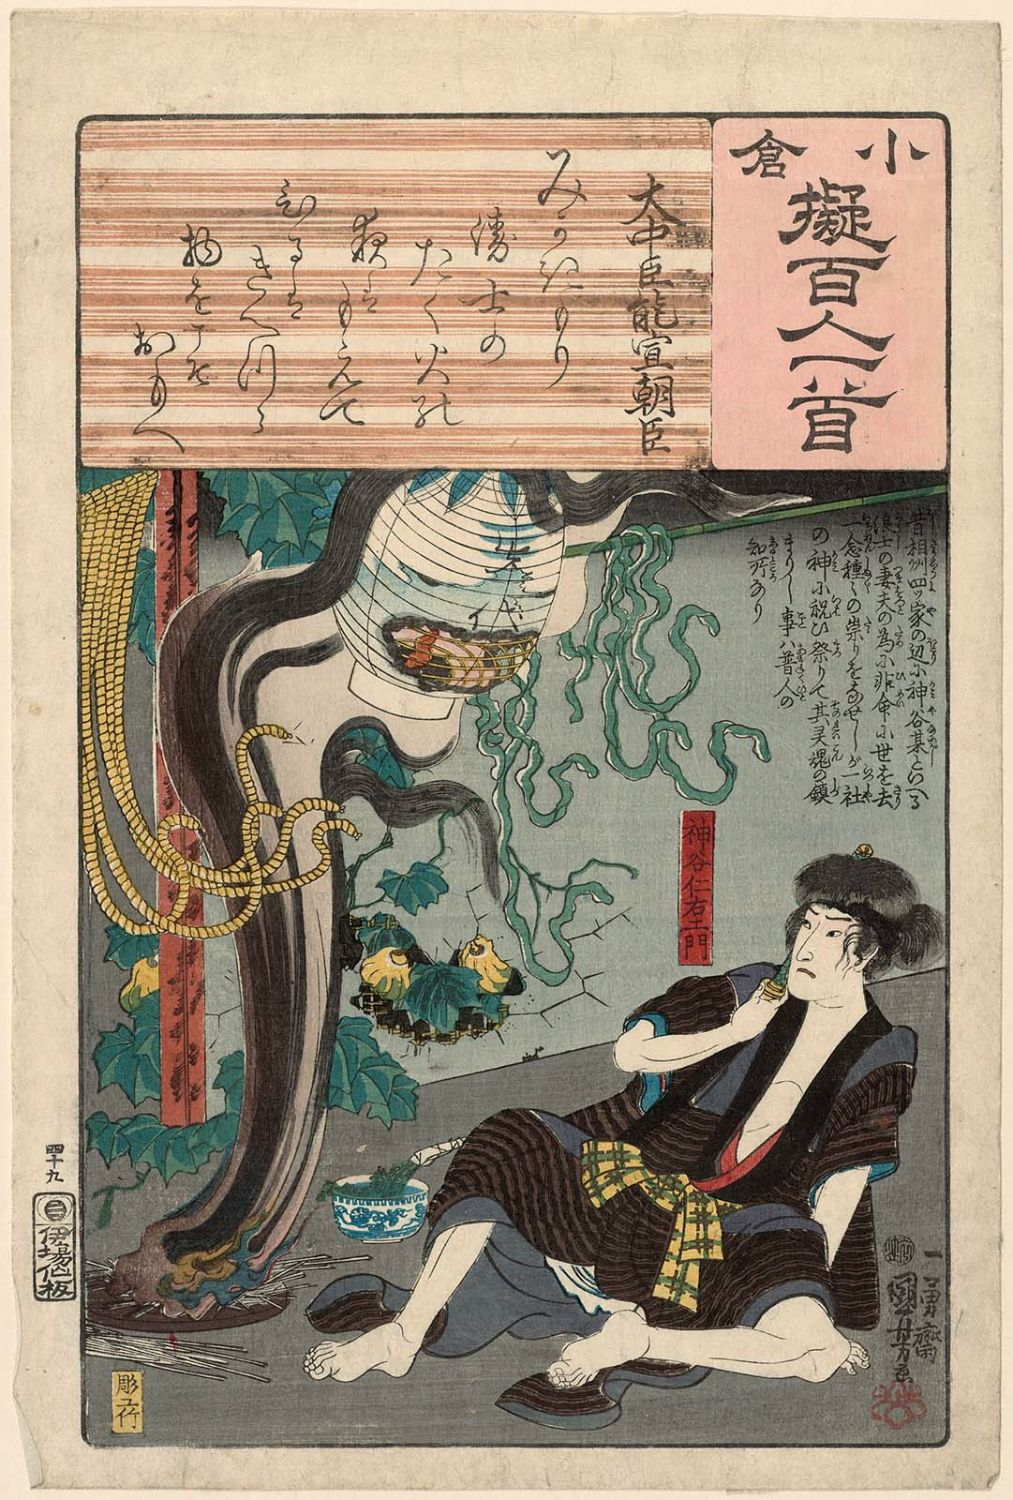 Utagawa Kuniyoshi - Poem by Ônakatomi no Yoshinobu Ason - Kamiya Niemon, from the series Ogura Imitations of One Hundred Poems by One Hundred Poets (Ogura nazorae hyakunin isshu) 1845-48